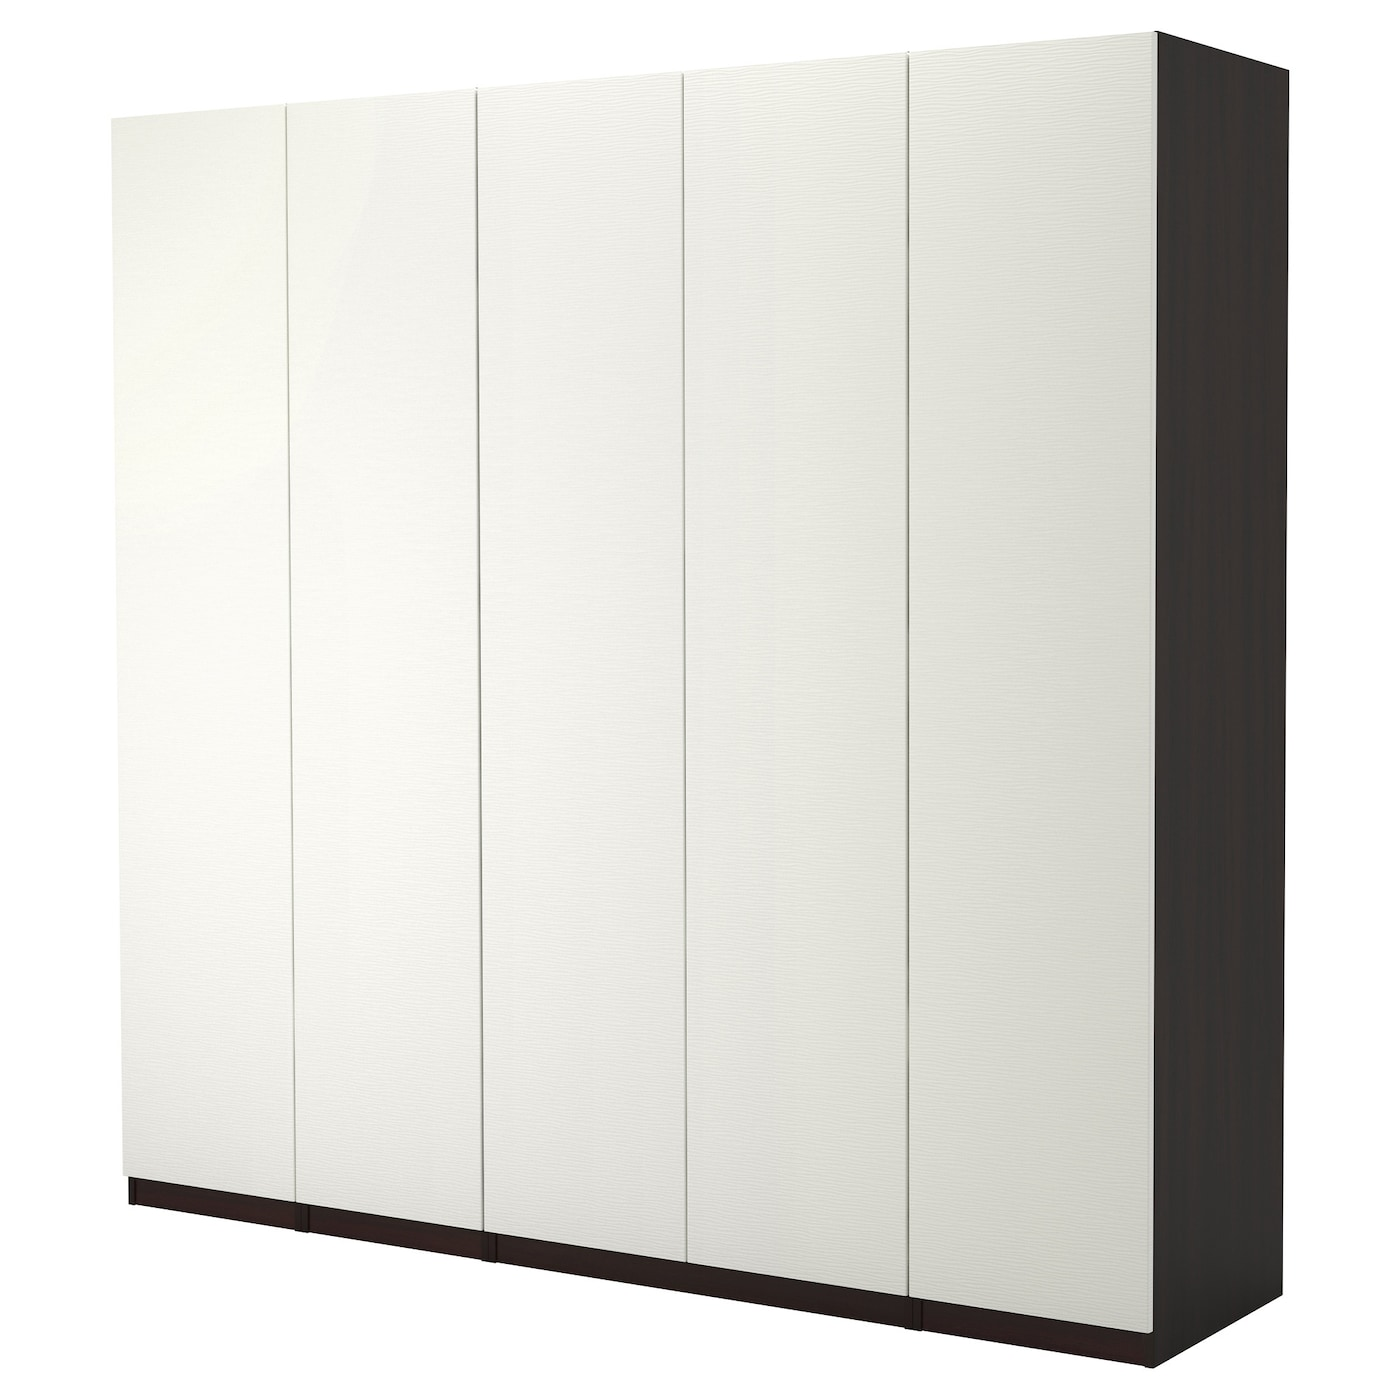 pax armoire penderie brun noir vinterbro blanc 250x60x236 cm ikea. Black Bedroom Furniture Sets. Home Design Ideas